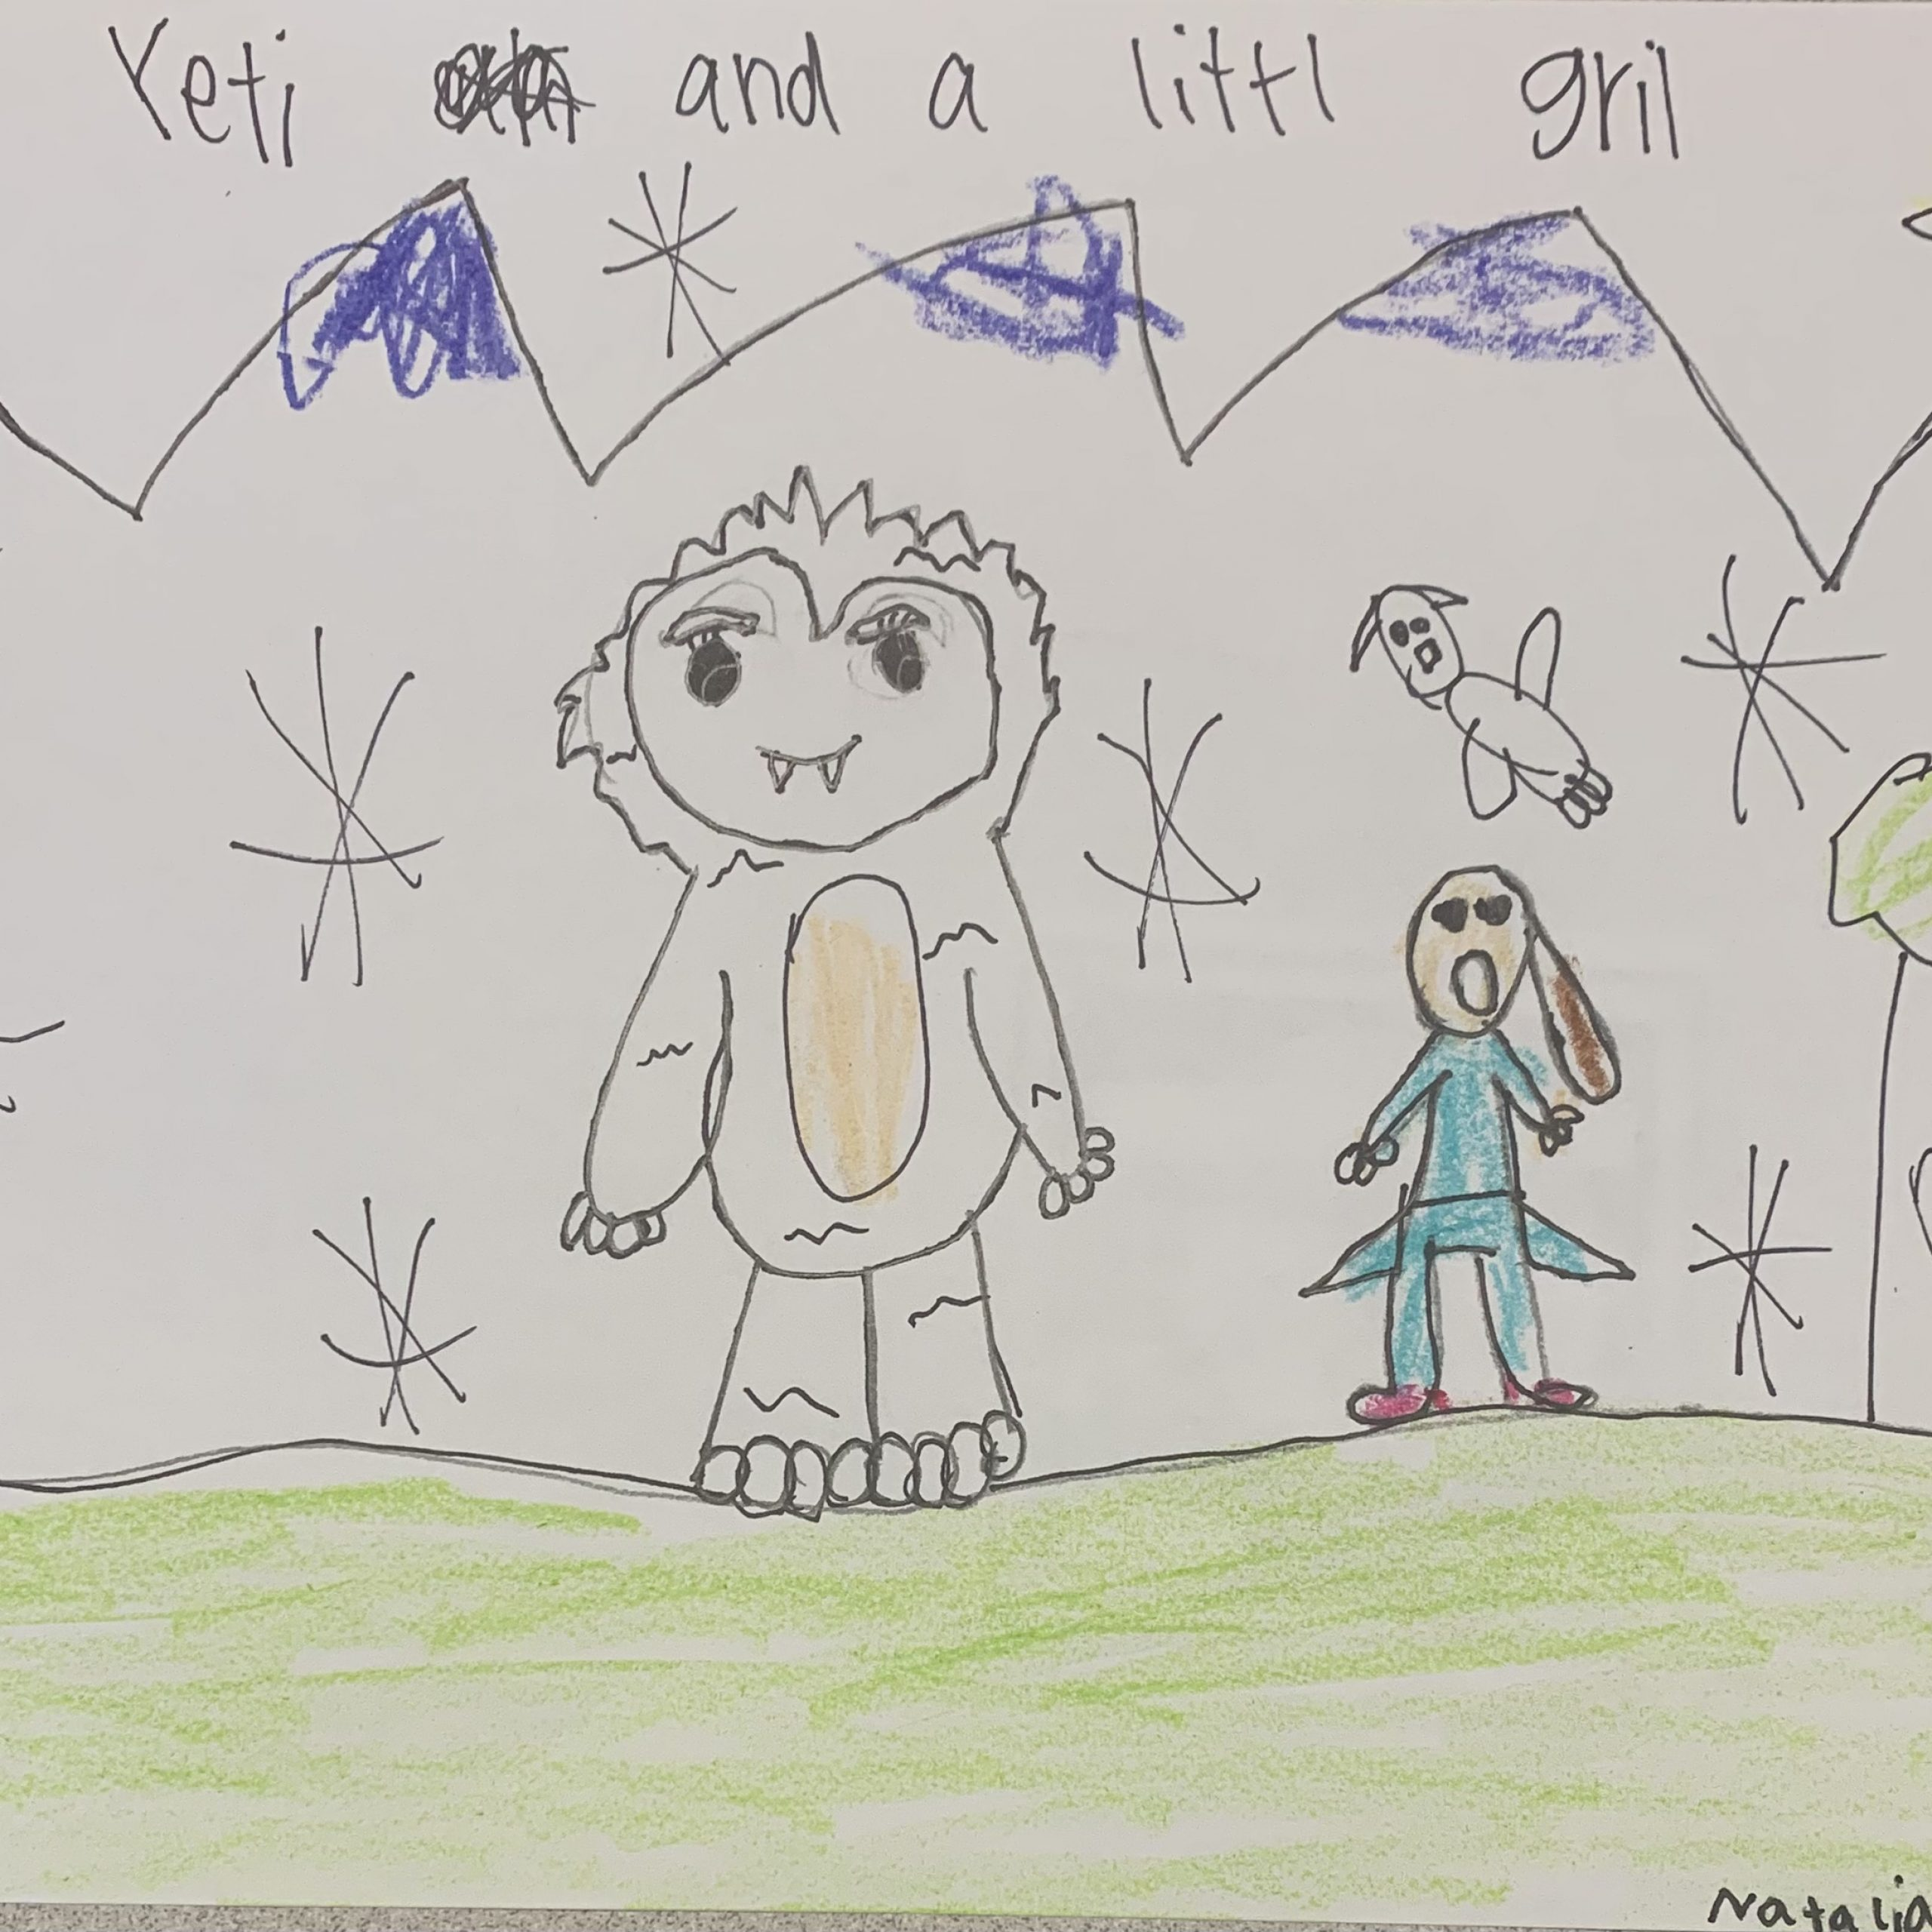 yeti and a little girl natalia h